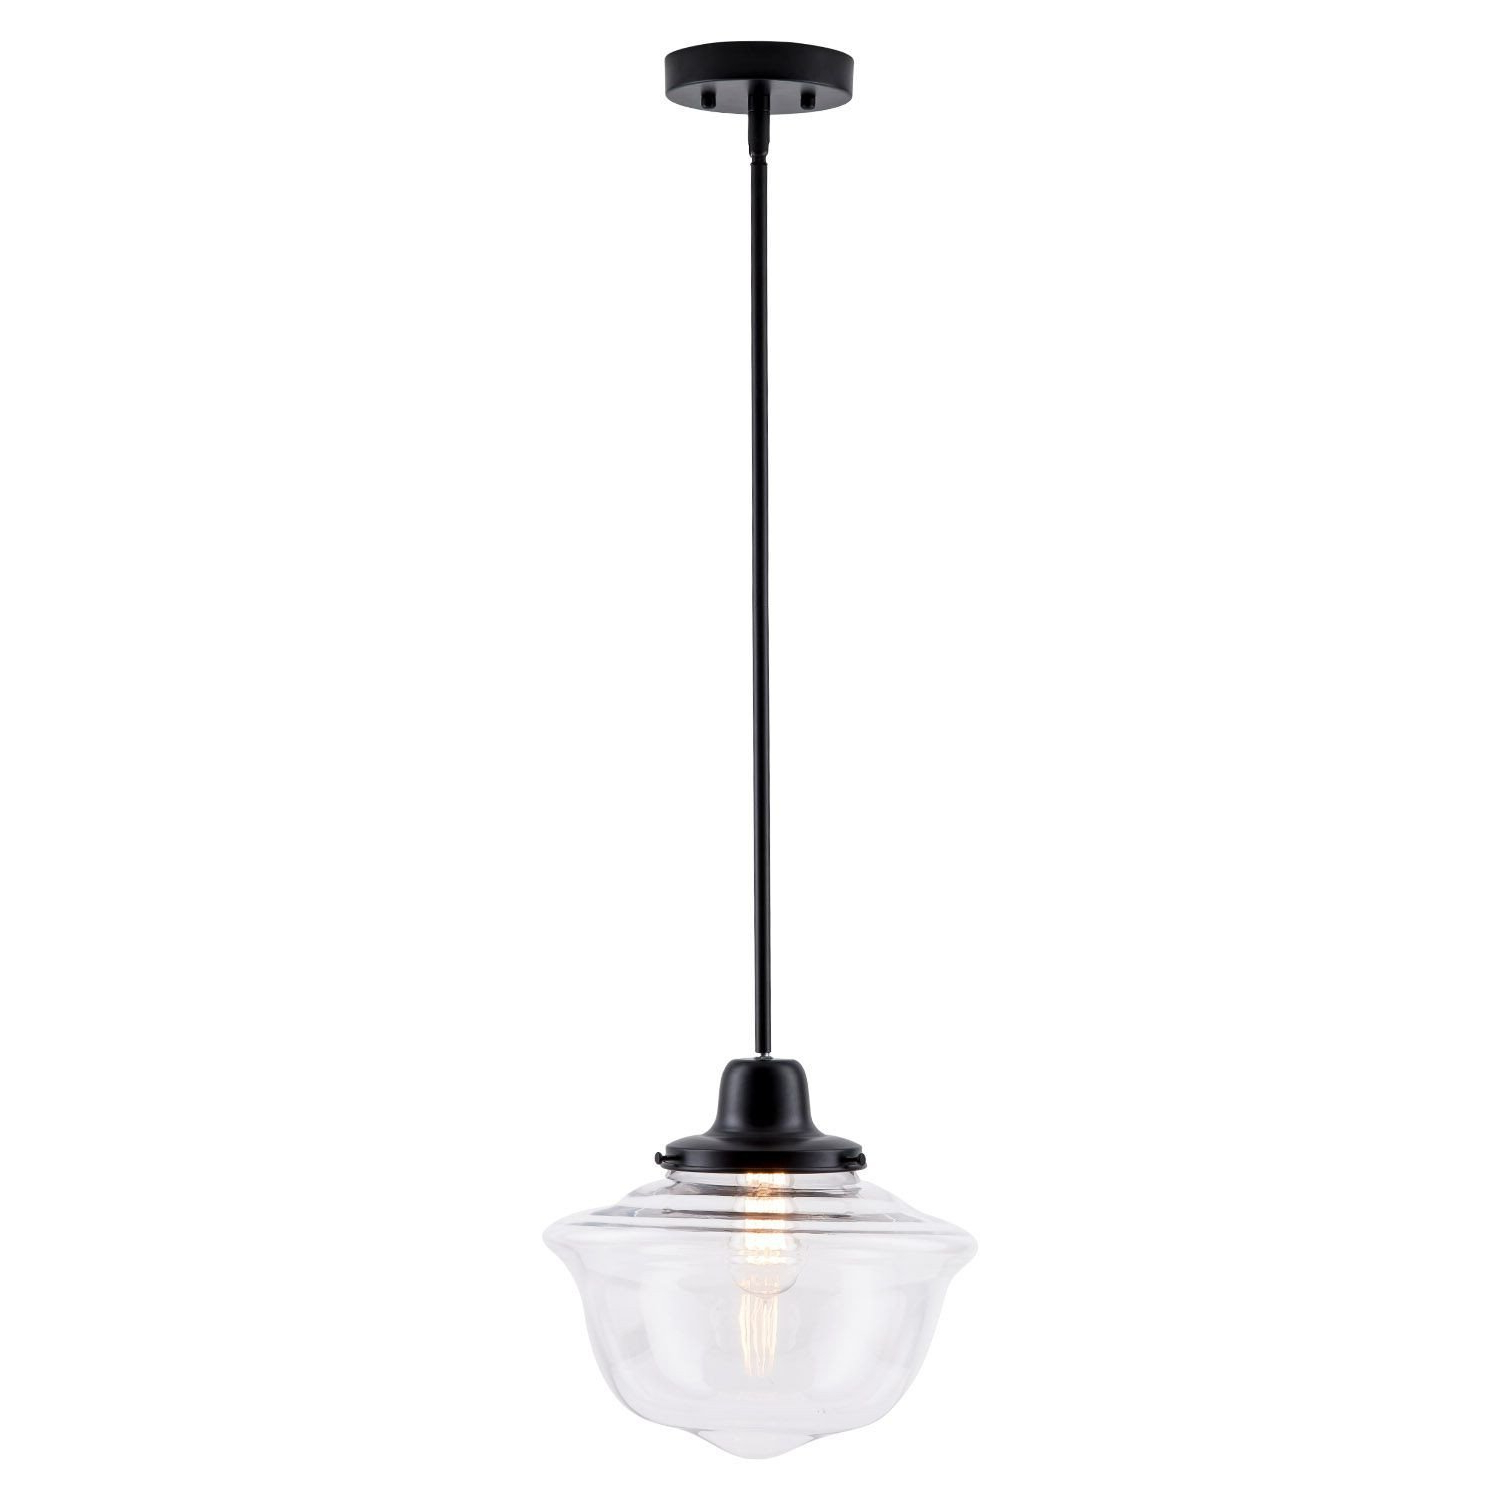 Most Up To Date Laurel Foundry Modern Farmhouse Isaiah 1 Light Single Schoolhouse Pendant Pertaining To Bainbridge 1 Light Single Cylinder Pendants (View 15 of 20)